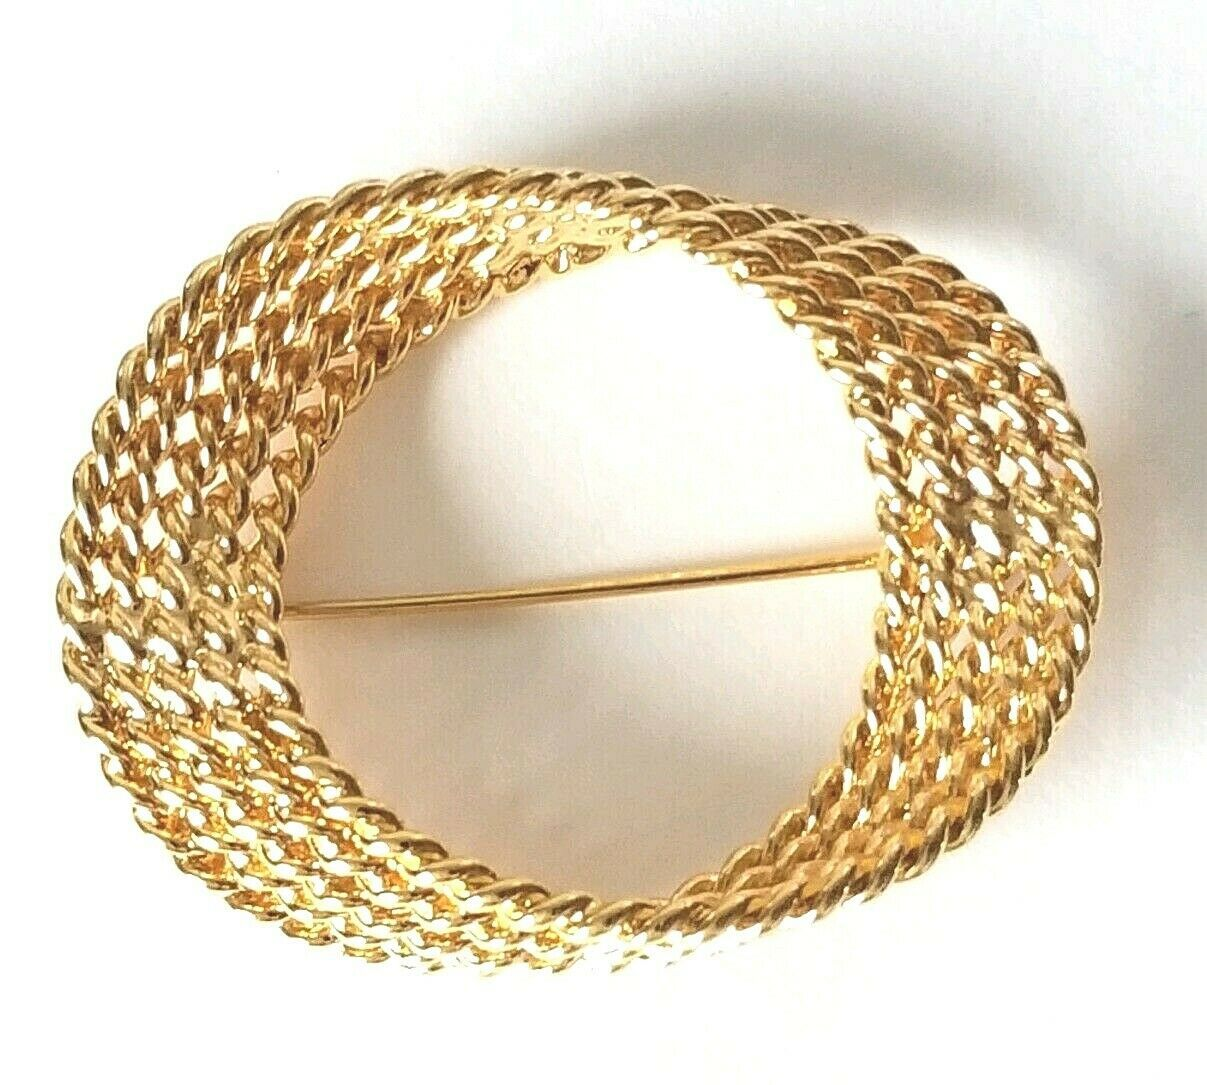 VTG Signed Monet Gold Tone Twisted Rope Mobius Loop Brooch Pin Möbius Band/Strip